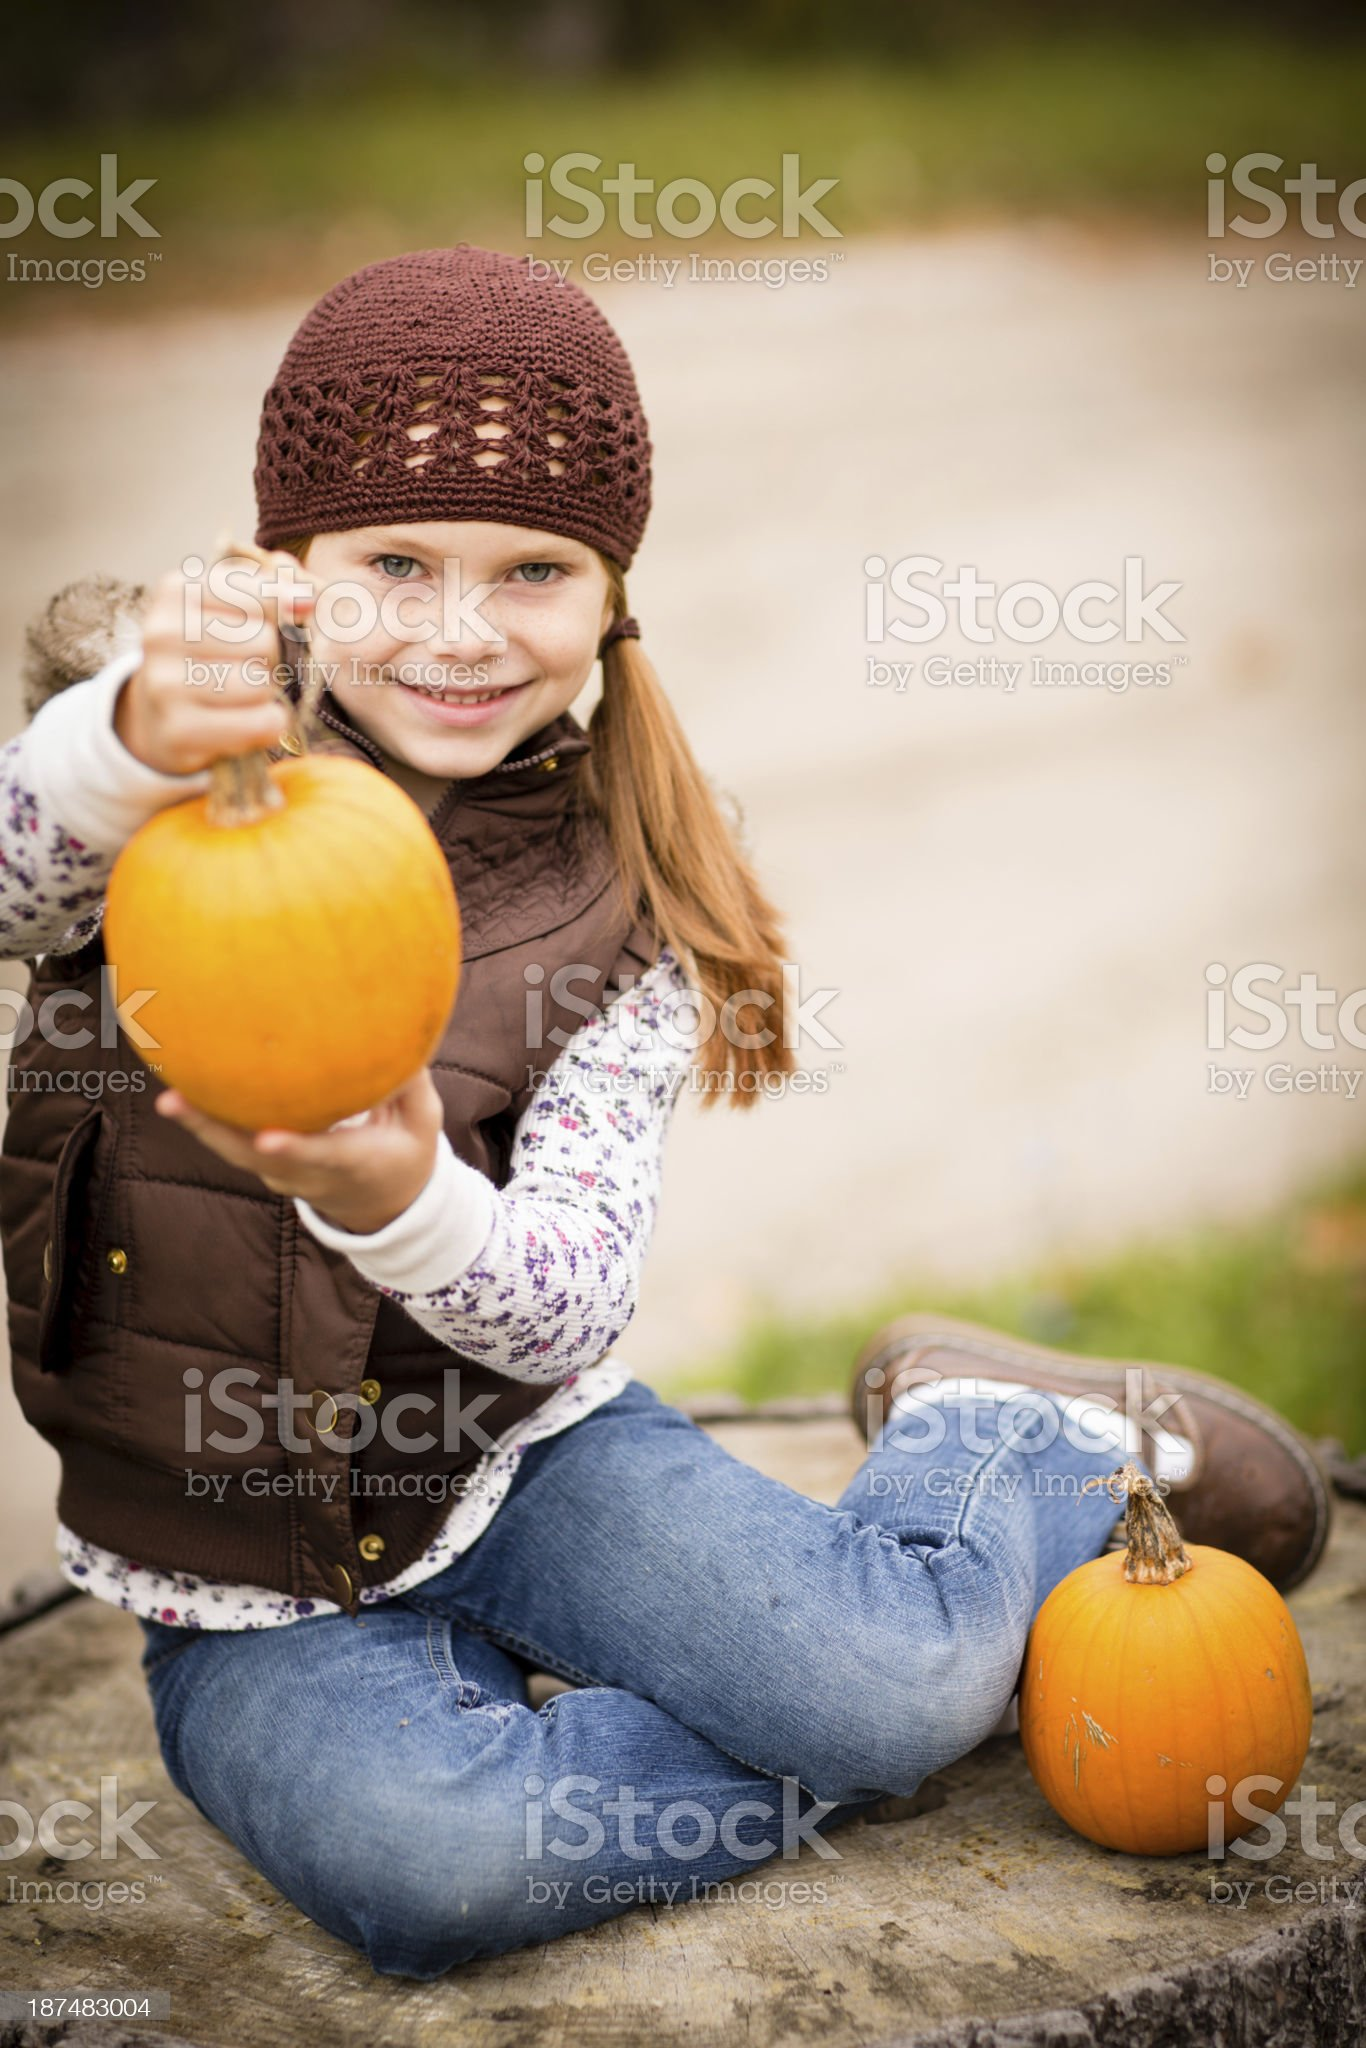 Little Girl Holding Pumpkin While Outside on Fall Day royalty-free stock photo